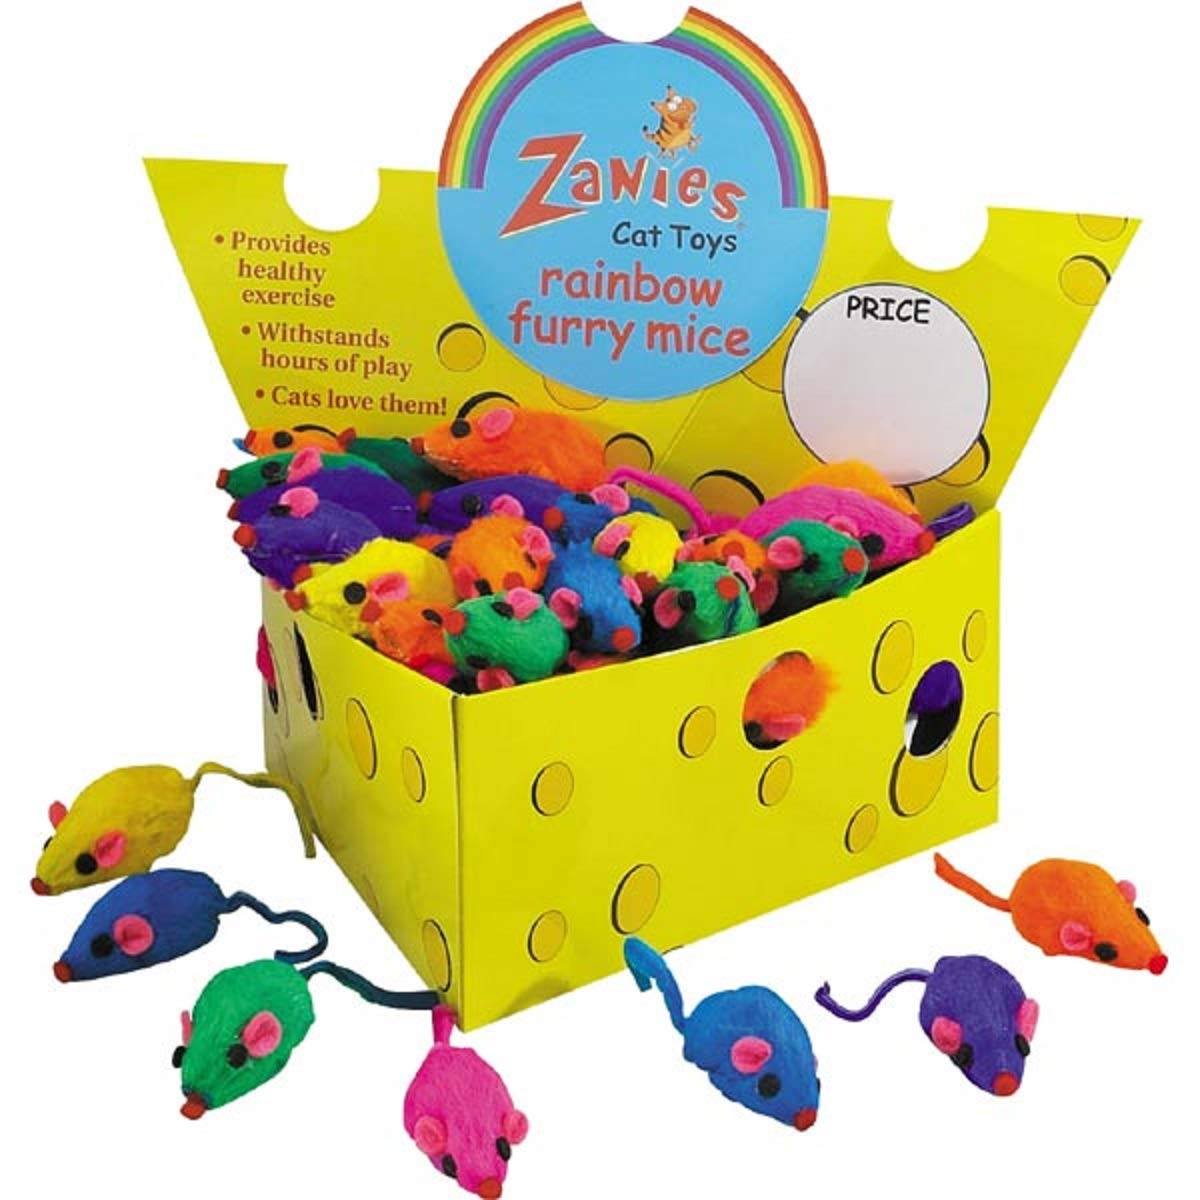 Box of 60 Zanies Real Fur Rattling Rainbow Mice in Cheese Box by Zanies